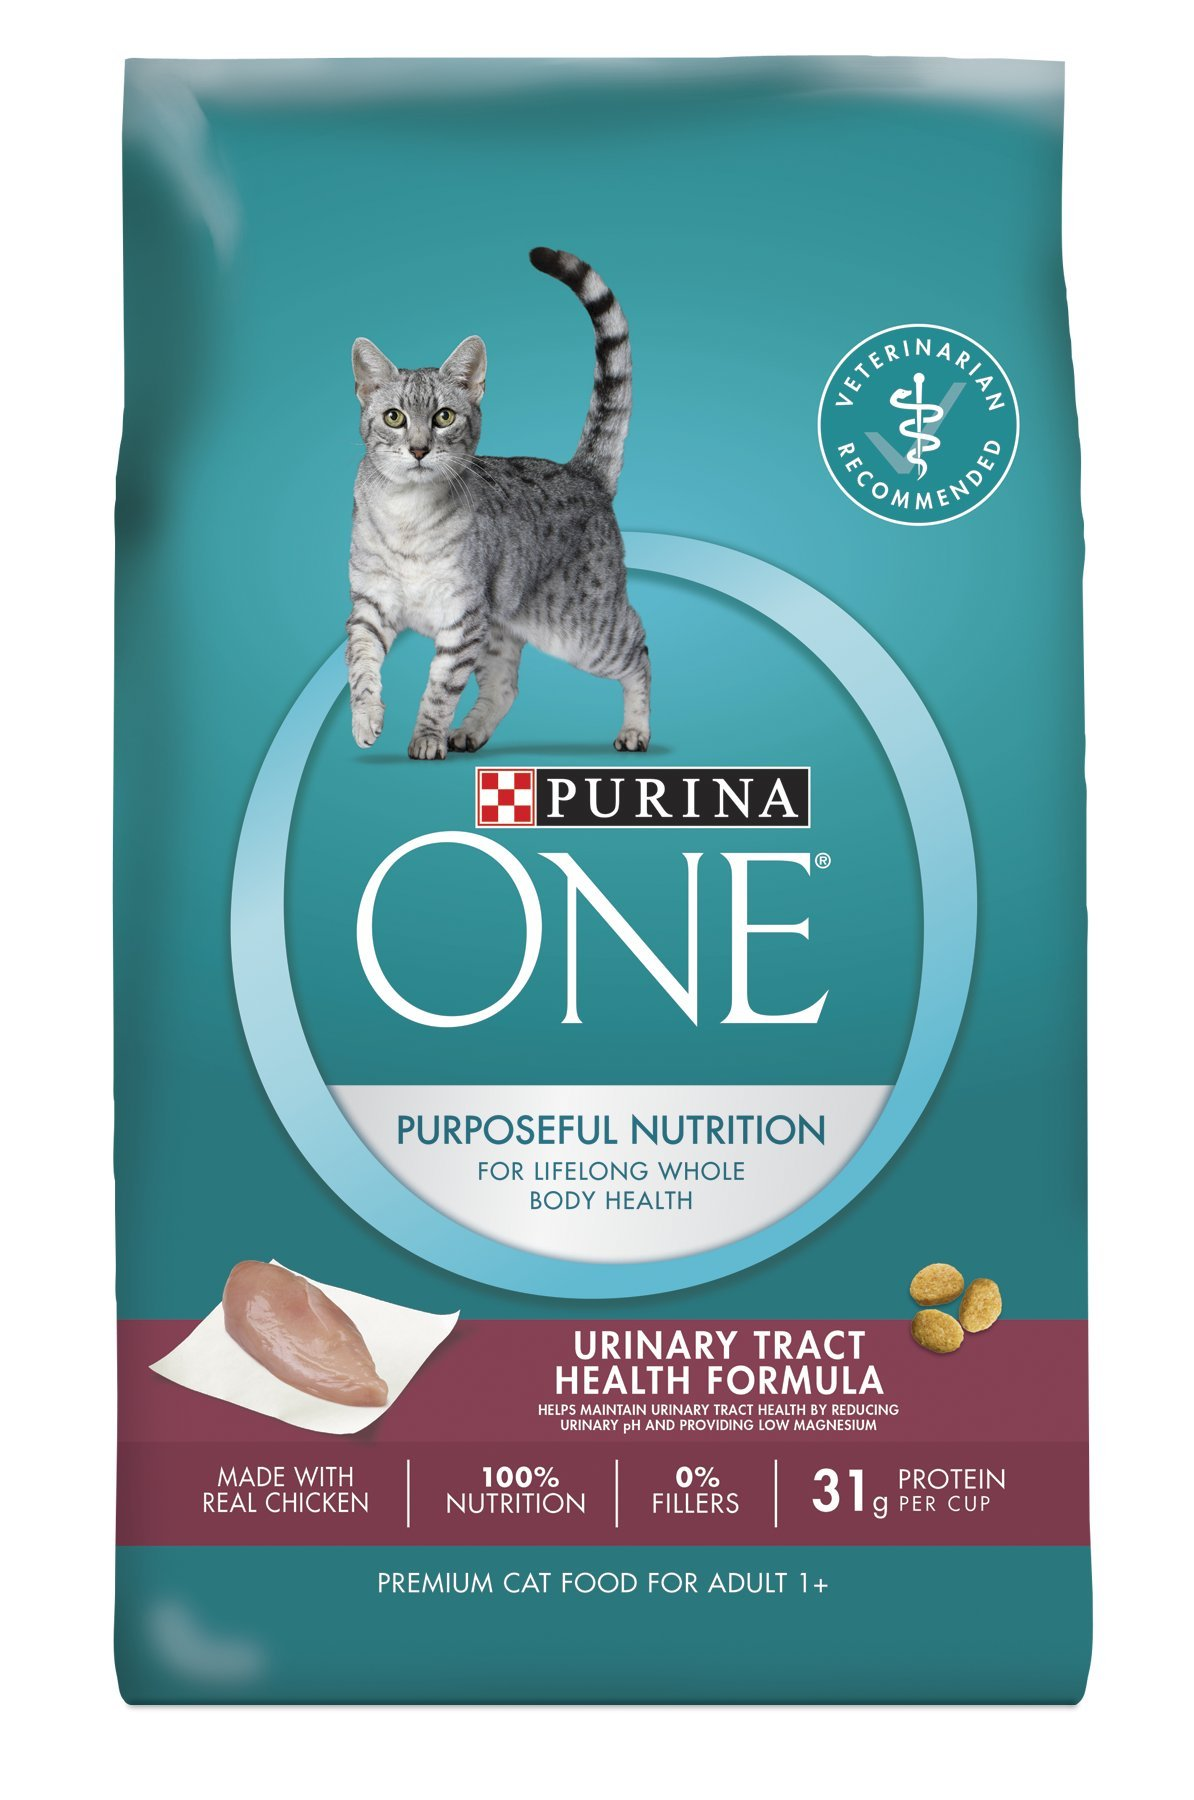 Purina ONE Urinary Tract Health Formula Dry Cat Food Standard Packaging